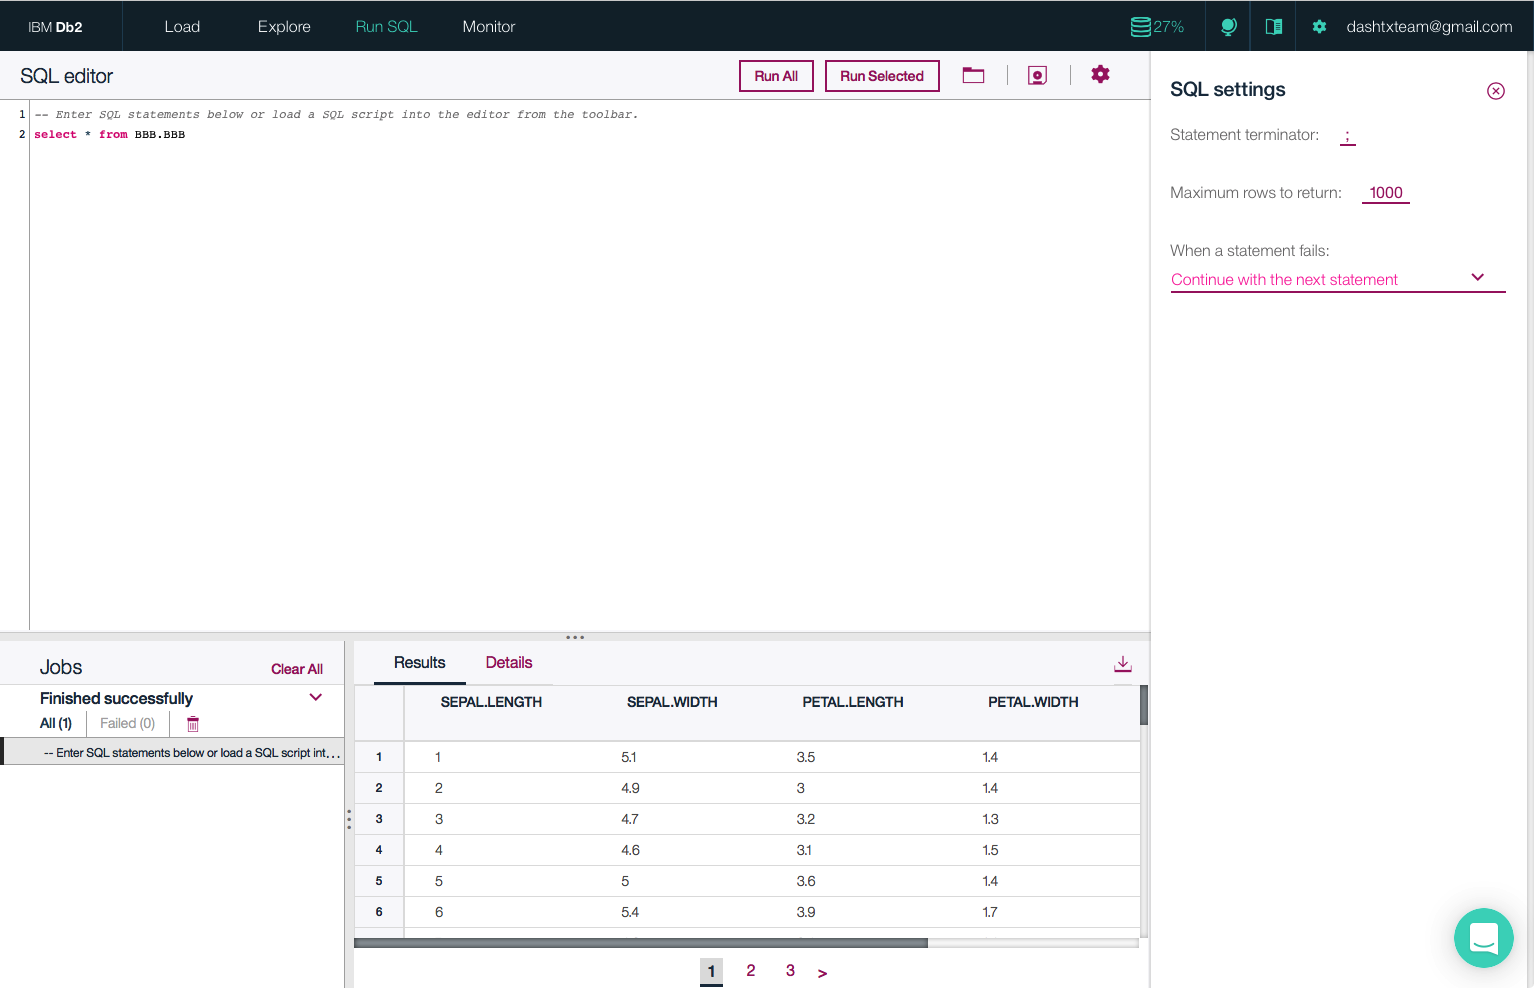 Get started right away using our easy to use SQL Editor